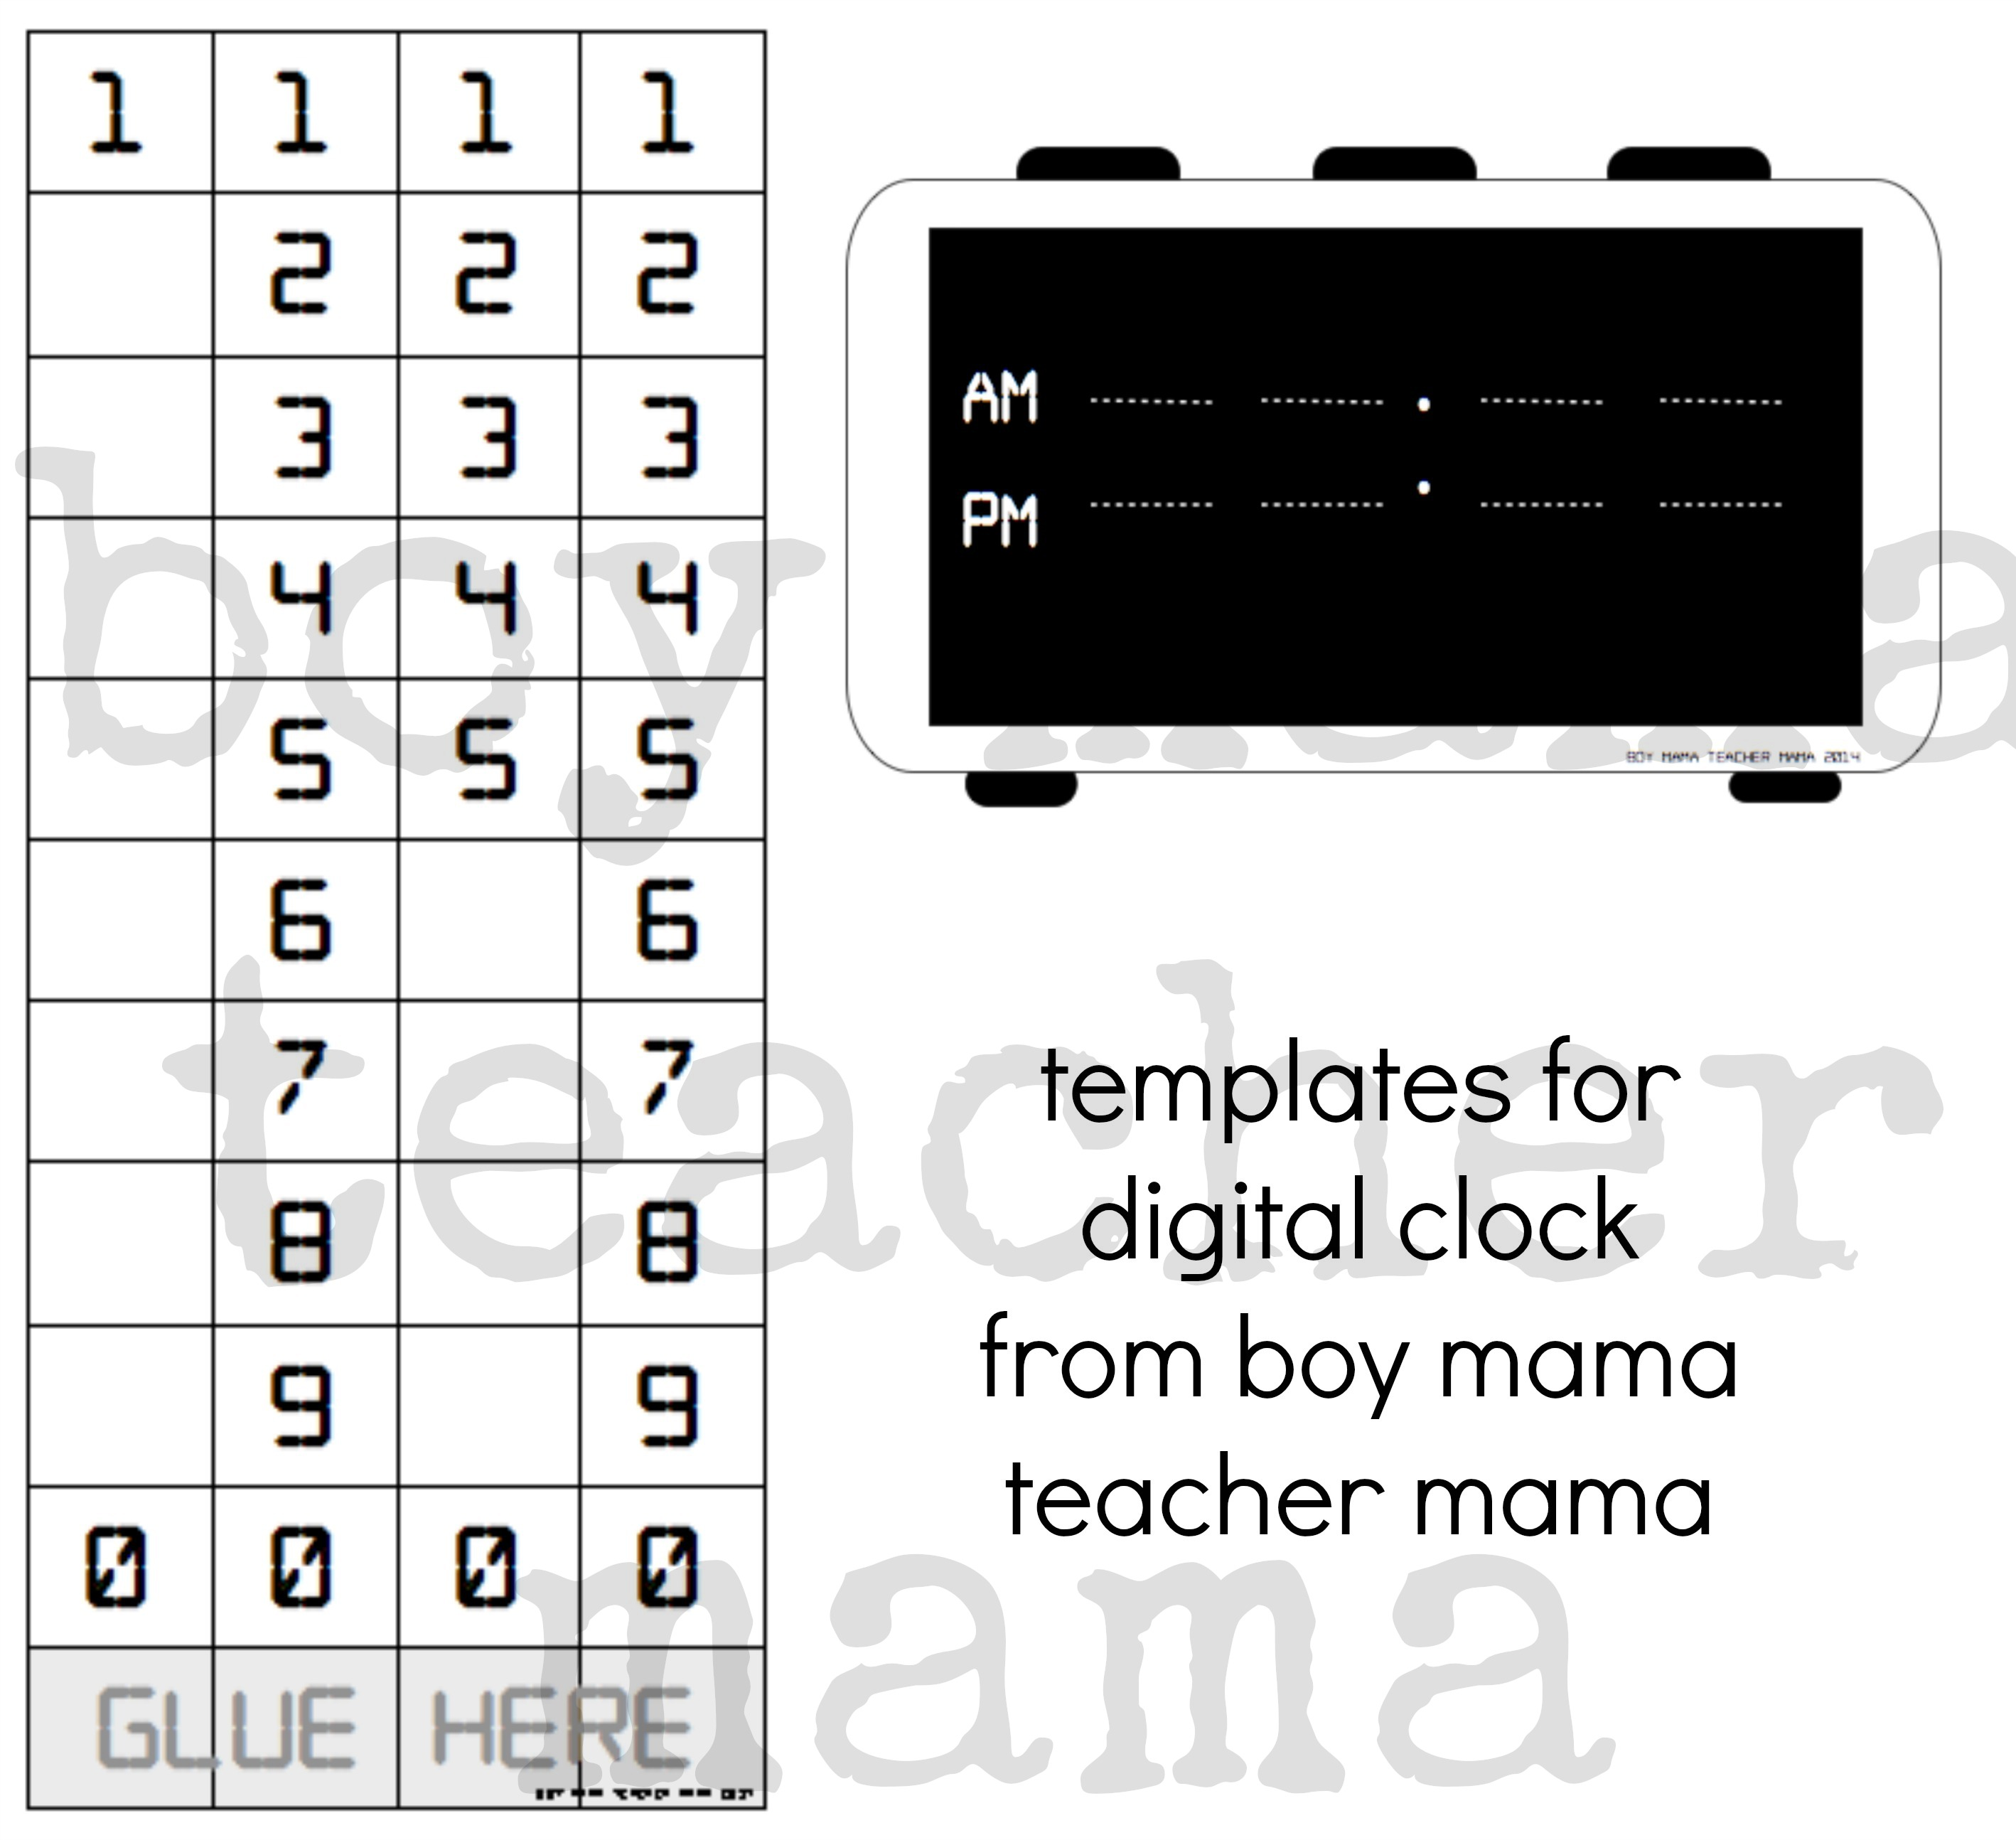 Teacher Mama: Creating a Digital Clock for Teaching Time - Boy Mama ...